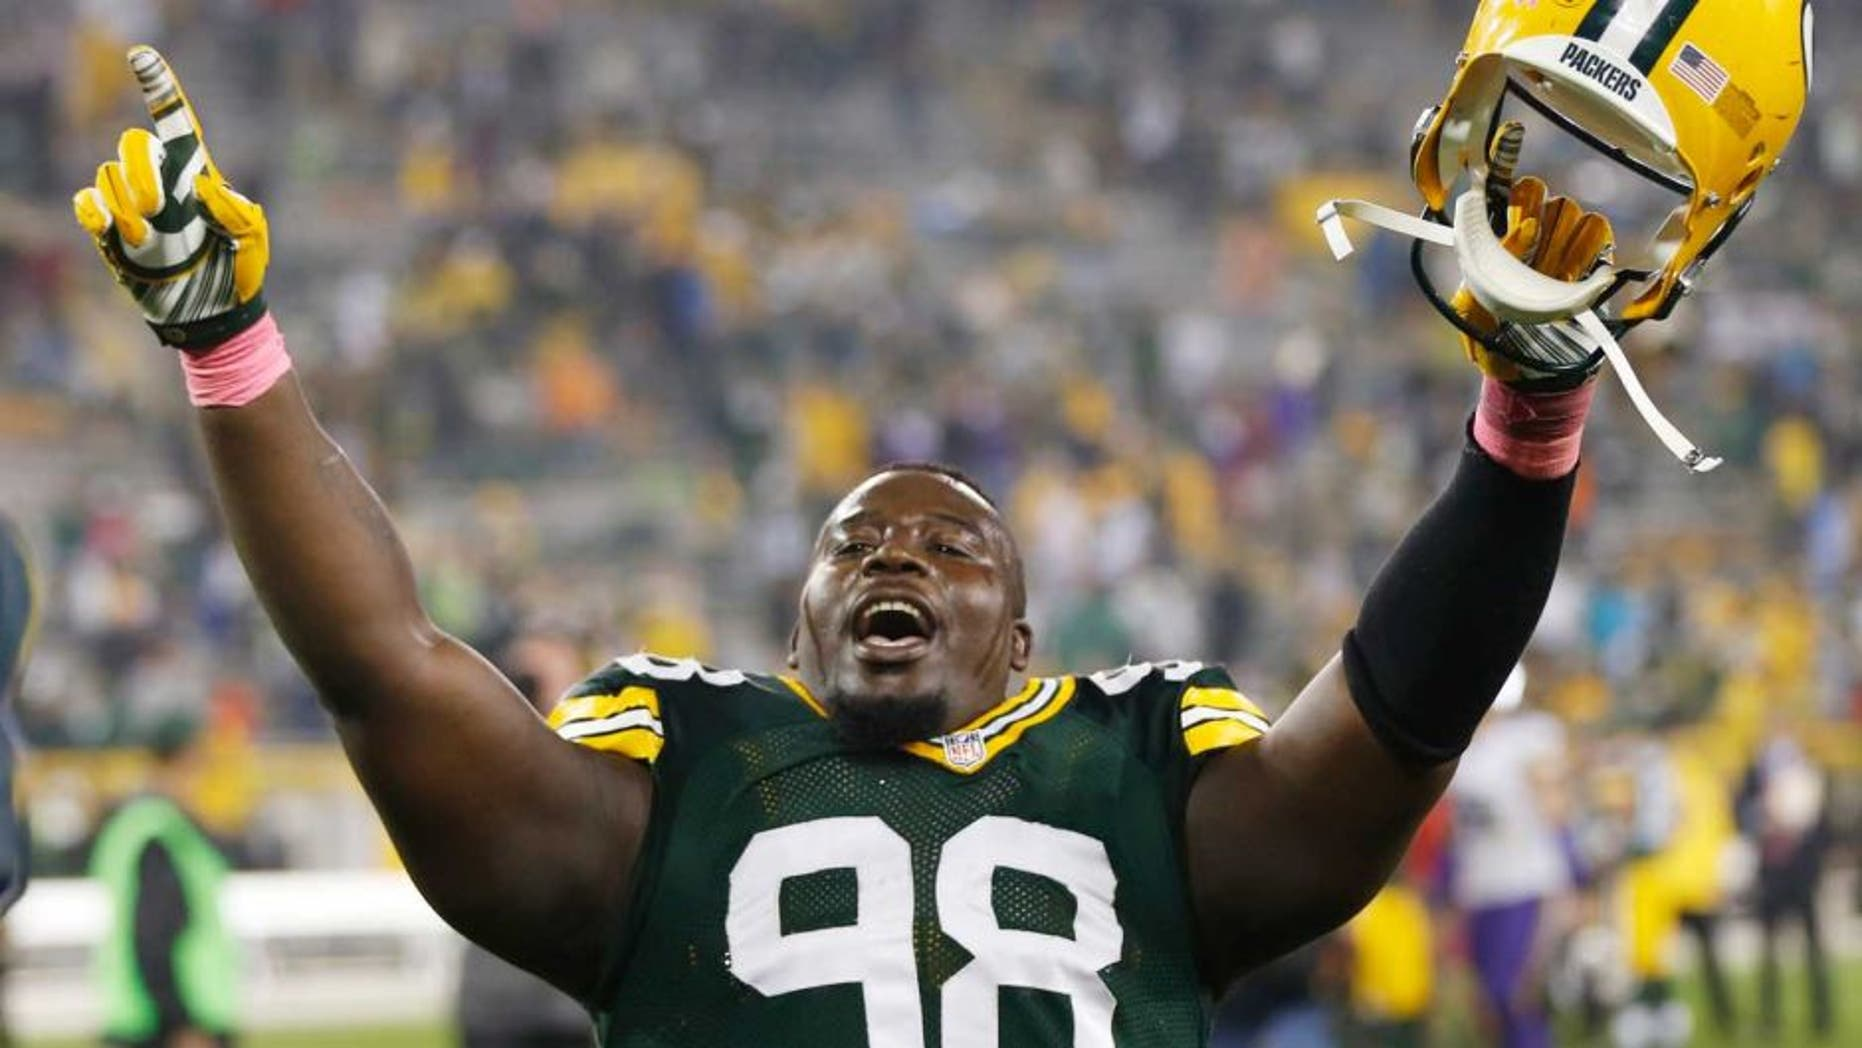 Thursday, October 2: The Green Bay Packers' Letroy Guion celebrates after the game against the Minnesota Vikings in Green Bay, Wis. The Packers won 42-10.